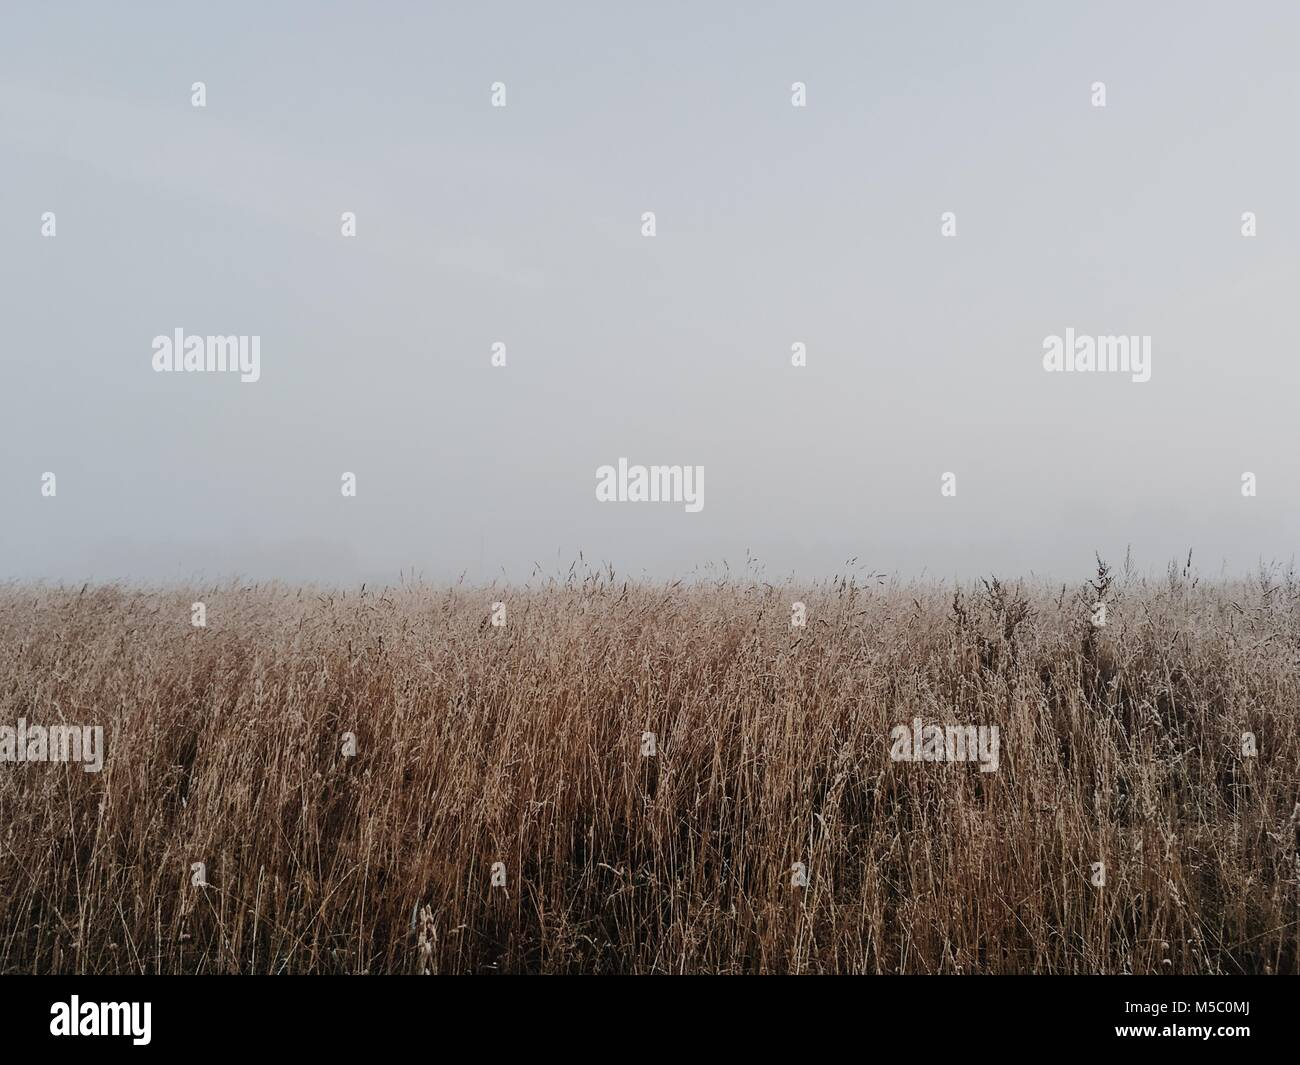 White nothing behind wheat field. Harsh autumn scene with fog. - Stock Image